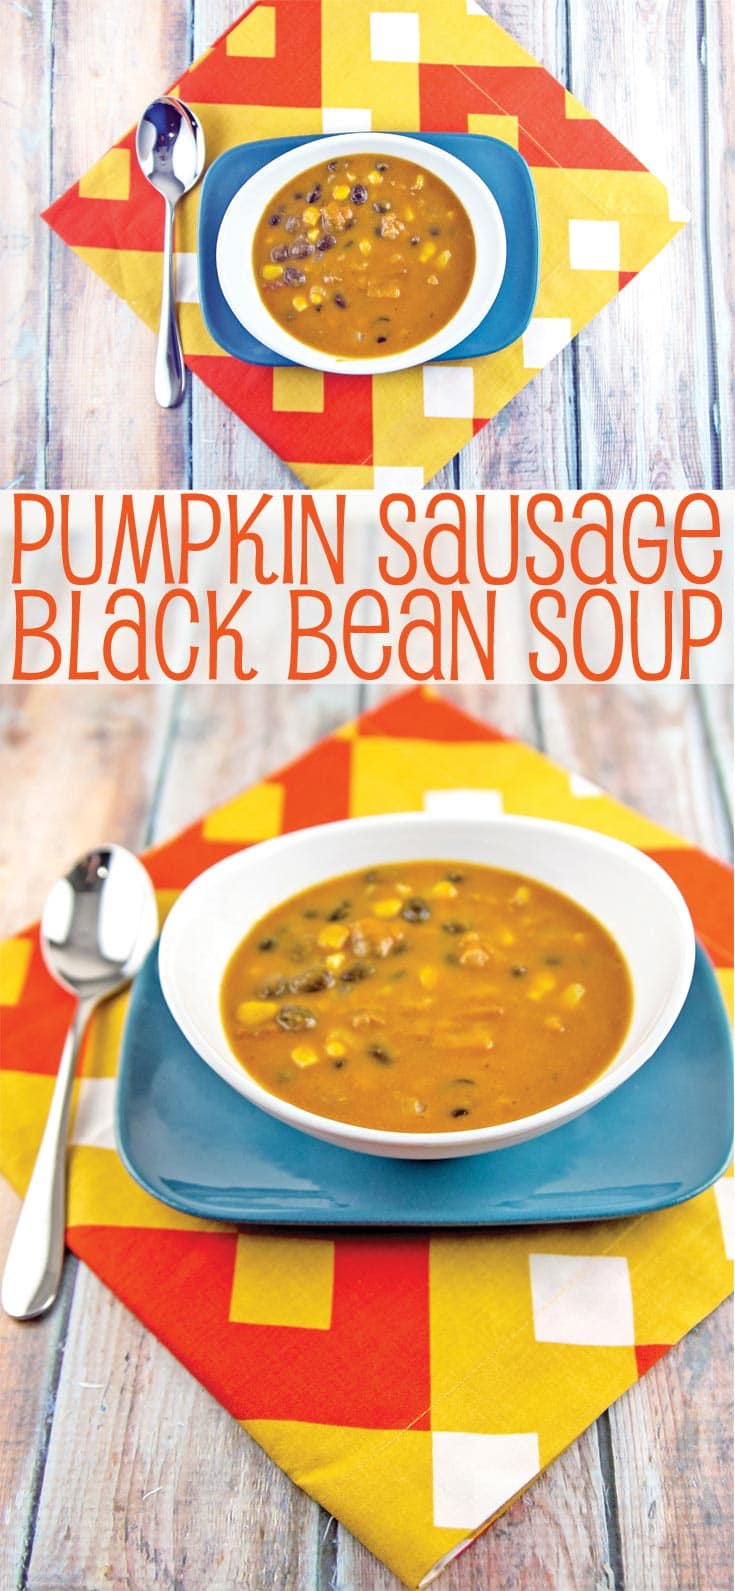 Pumpkin, Sausage, and Black Bean Soup: an easy, hearty soup for cold winter nights. Make ahead -- freezer friendly! {Bunsen Burner Bakery}